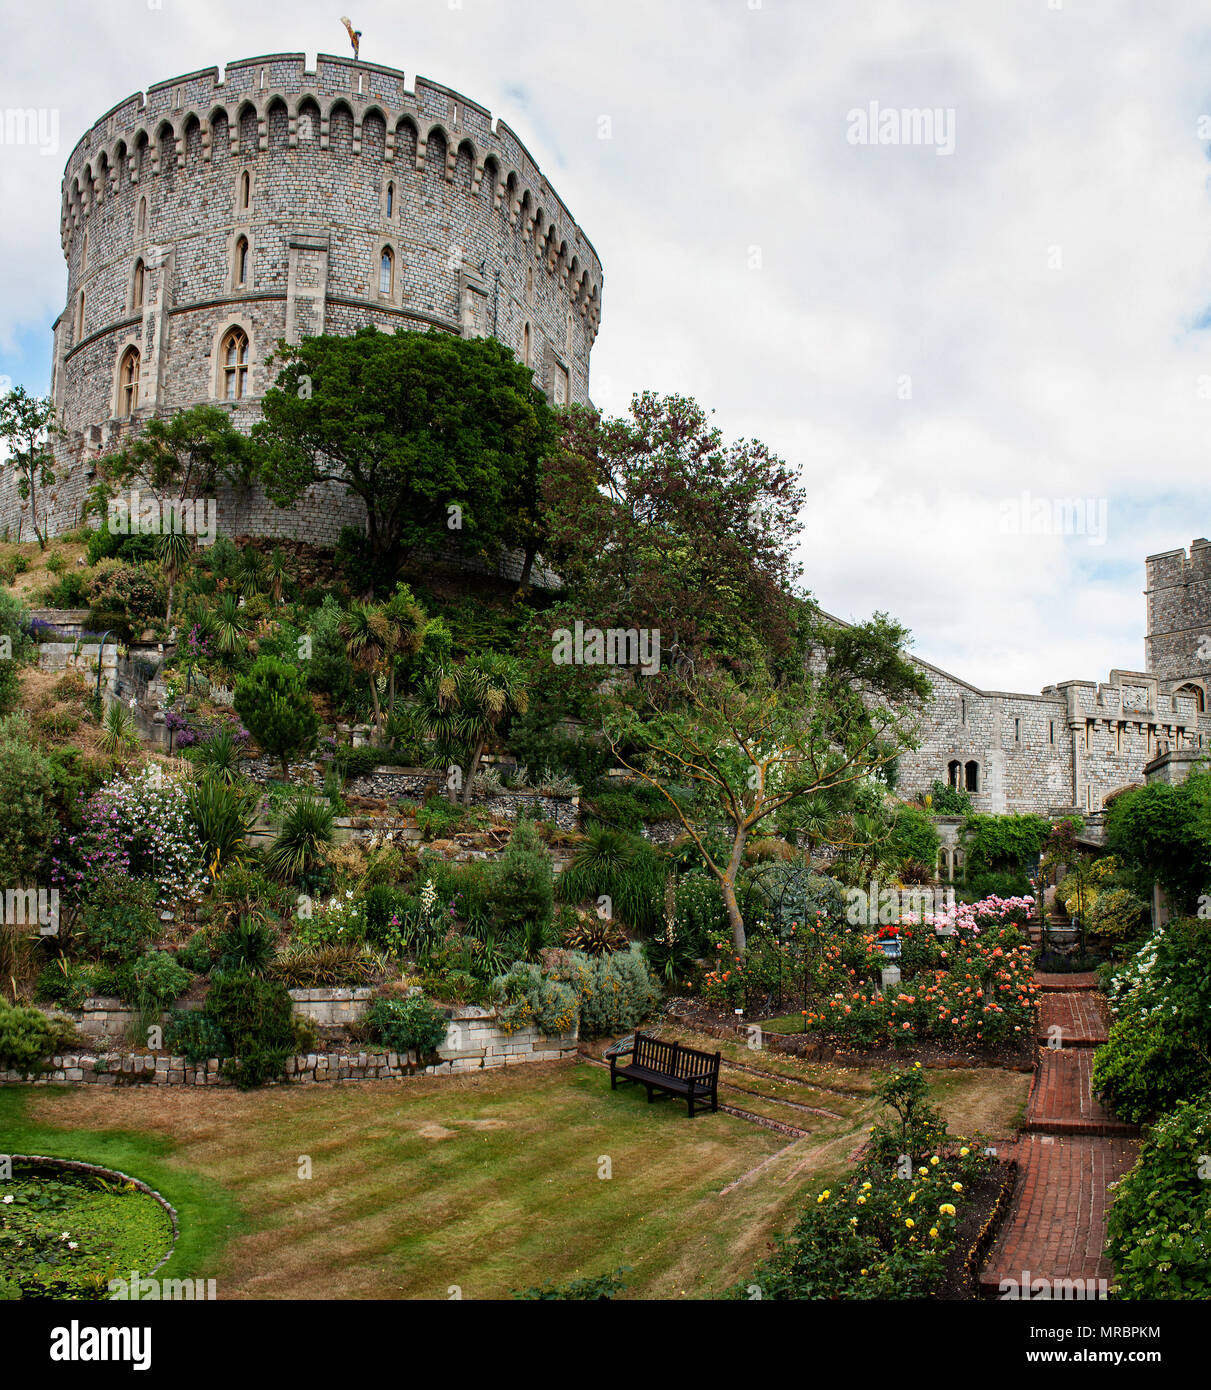 Inner garden surrounding the round tower in the middle ward of Windsor castle, residence of the british royal family in England, UK. - Stock Image